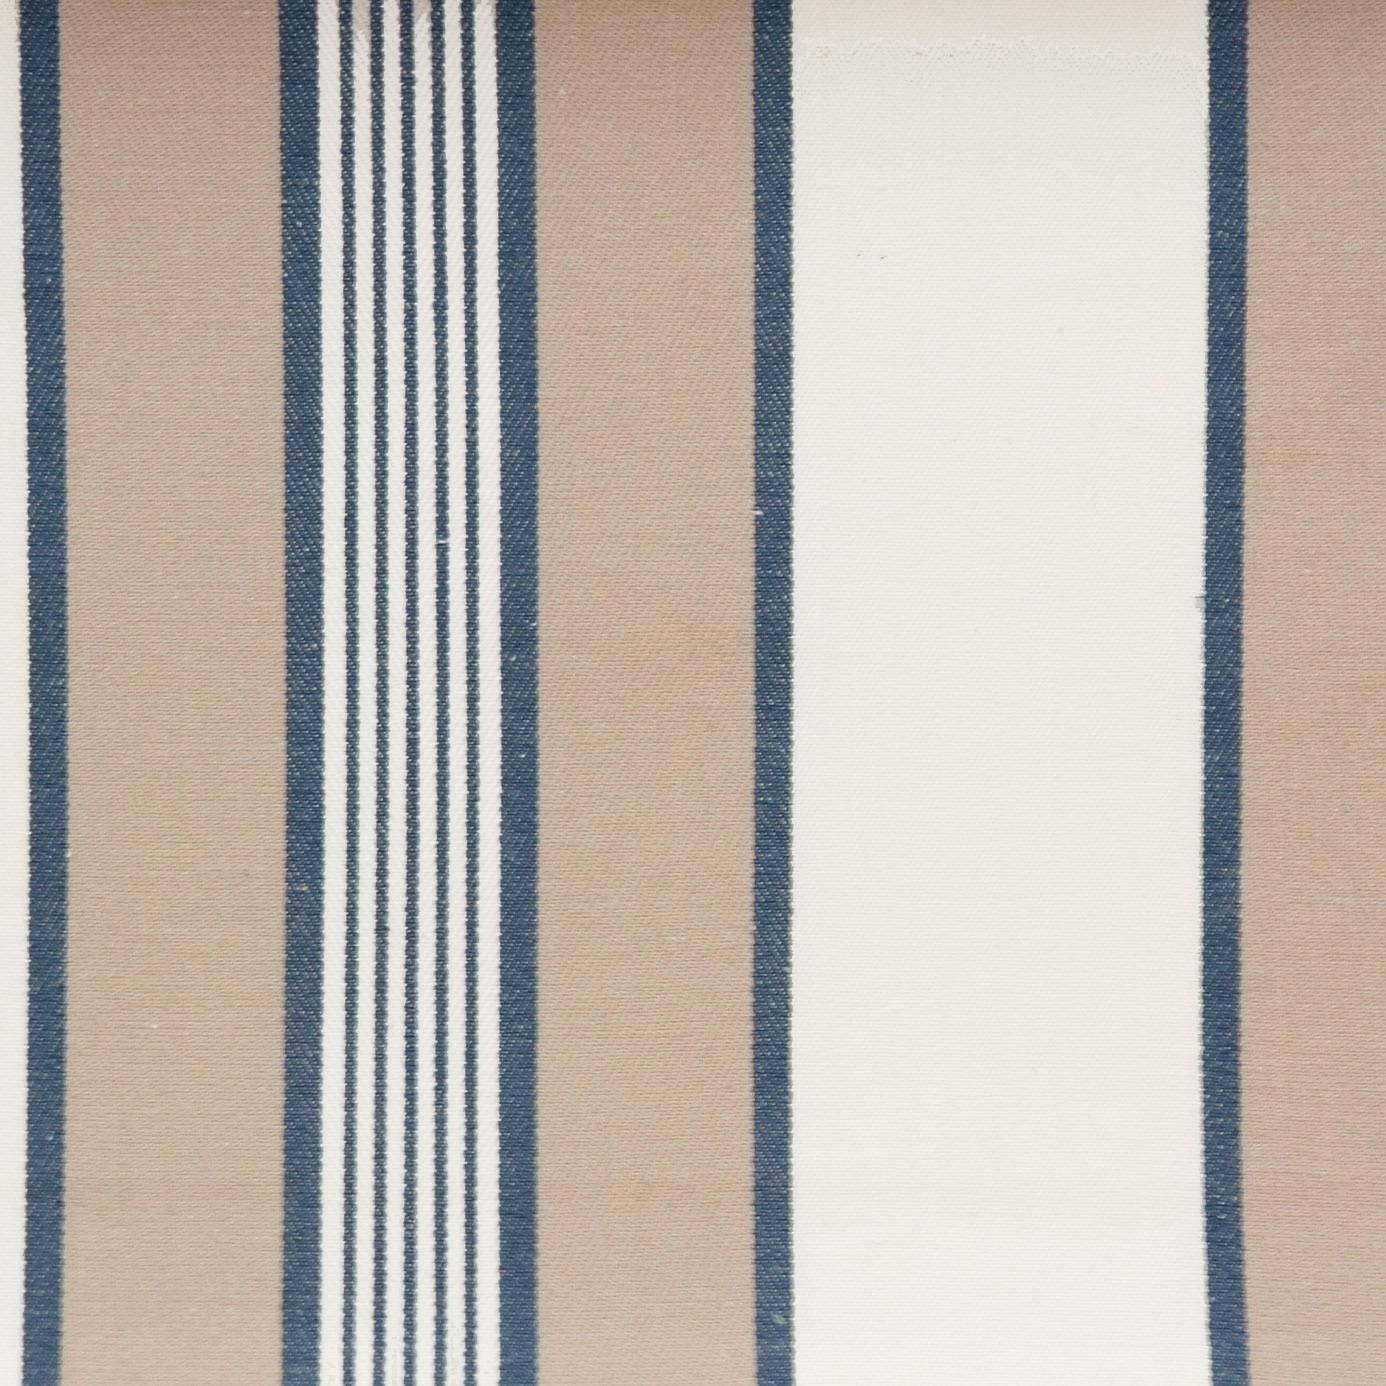 Regatta fabric navy f0423 03 clarke clarke ticking for Ticking fabric